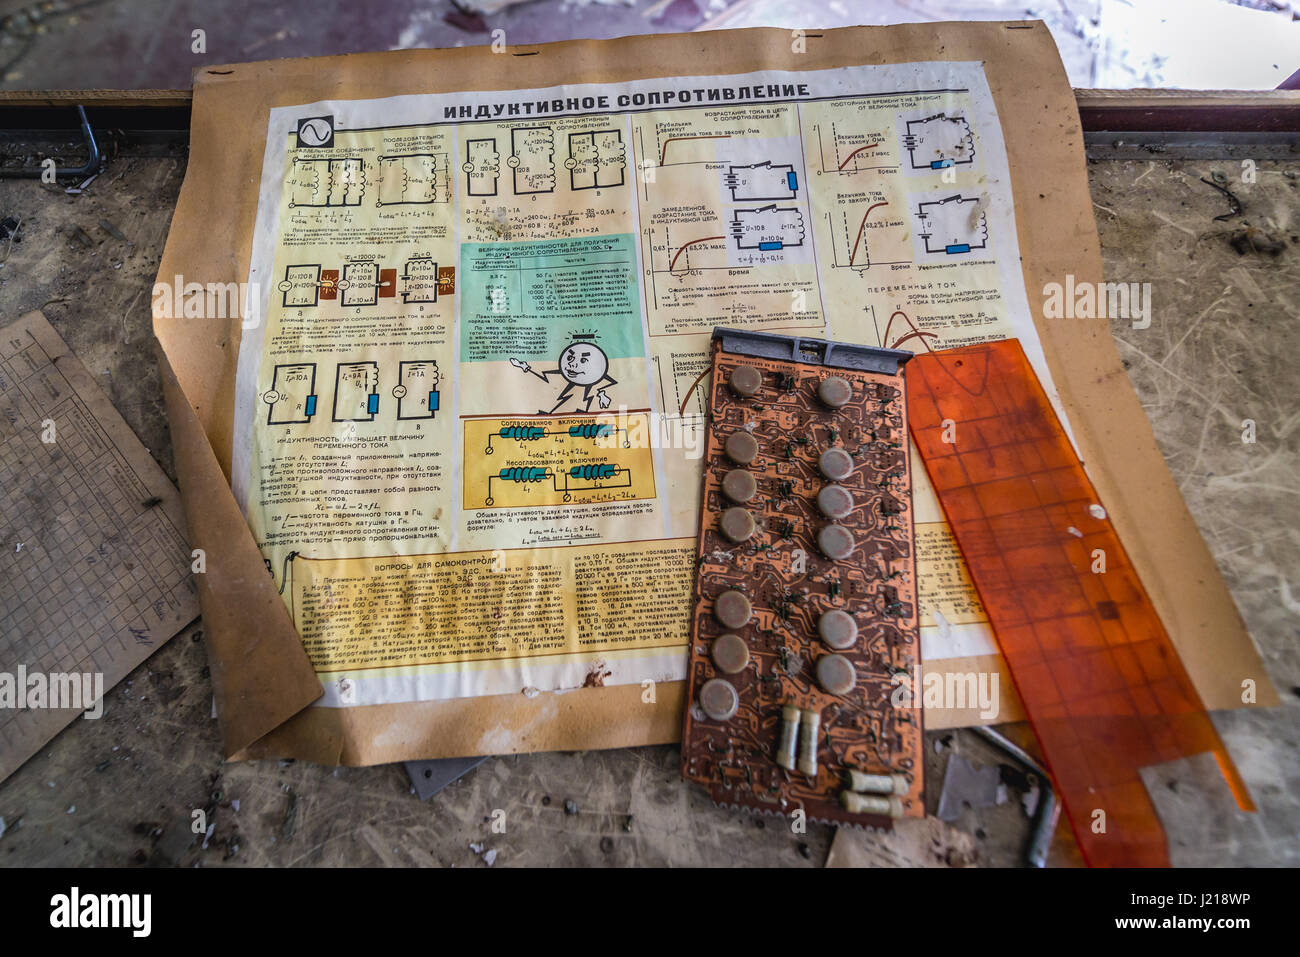 schematic of a nuclear power plant html with Stock Photo Drawing Schematic In  Mand Centre Building Of Soviet Duga Radar 138941202 on Chernobyl Disaster 12316158 likewise Wiring Diagram For Electric Stations in addition 20090828261702500 furthermore Stock Photo Drawing Schematic In  mand Centre Building Of Soviet Duga Radar 138941202 besides Fossil Fuel Power Plant Diagram.